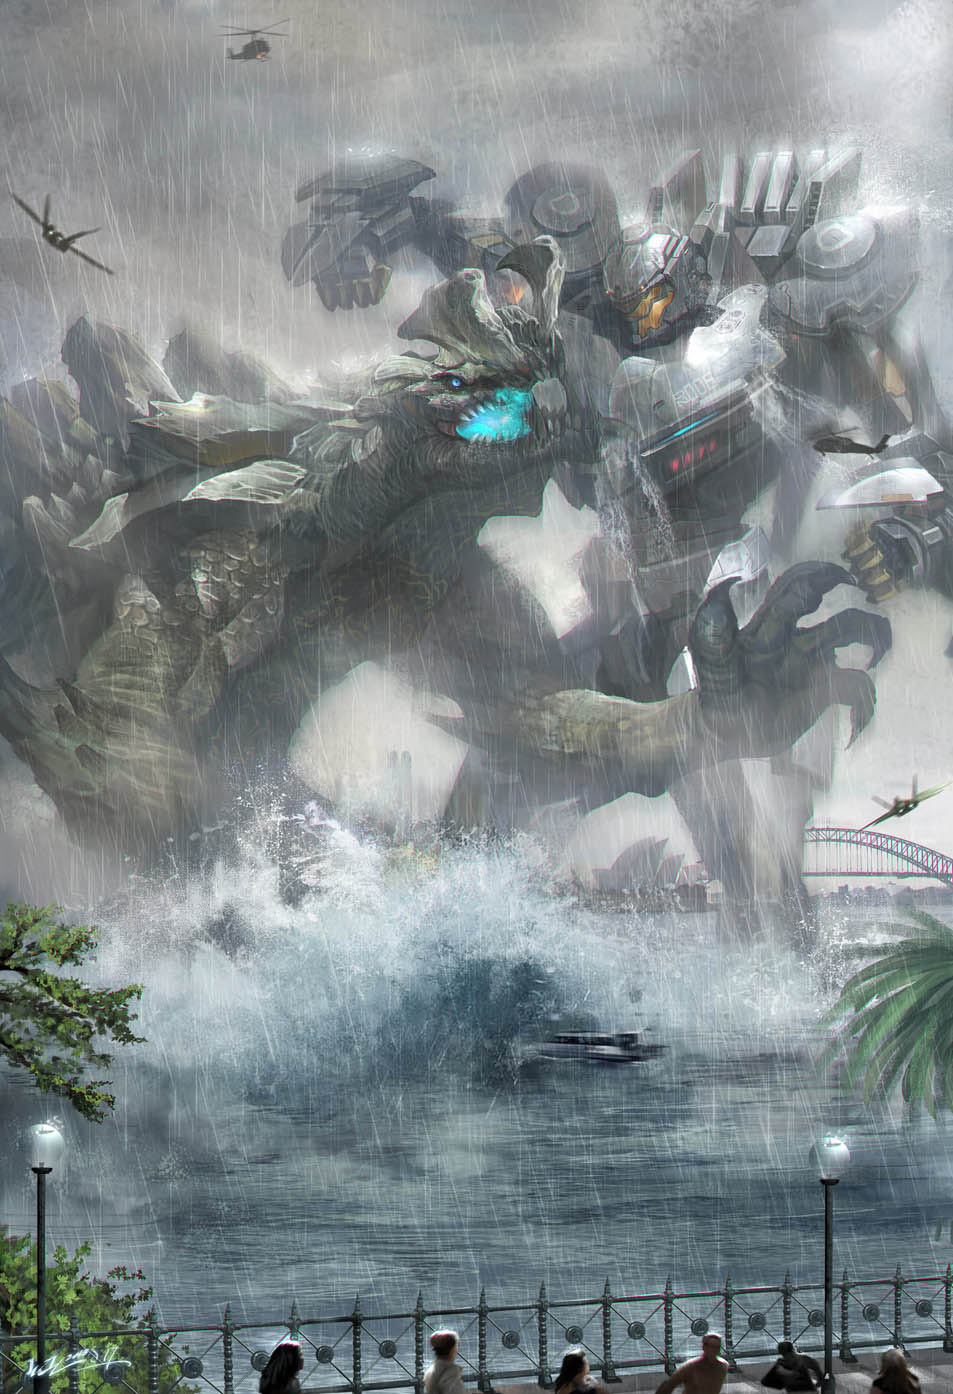 PACIFIC RIM-Striker Eureka by JUNLING